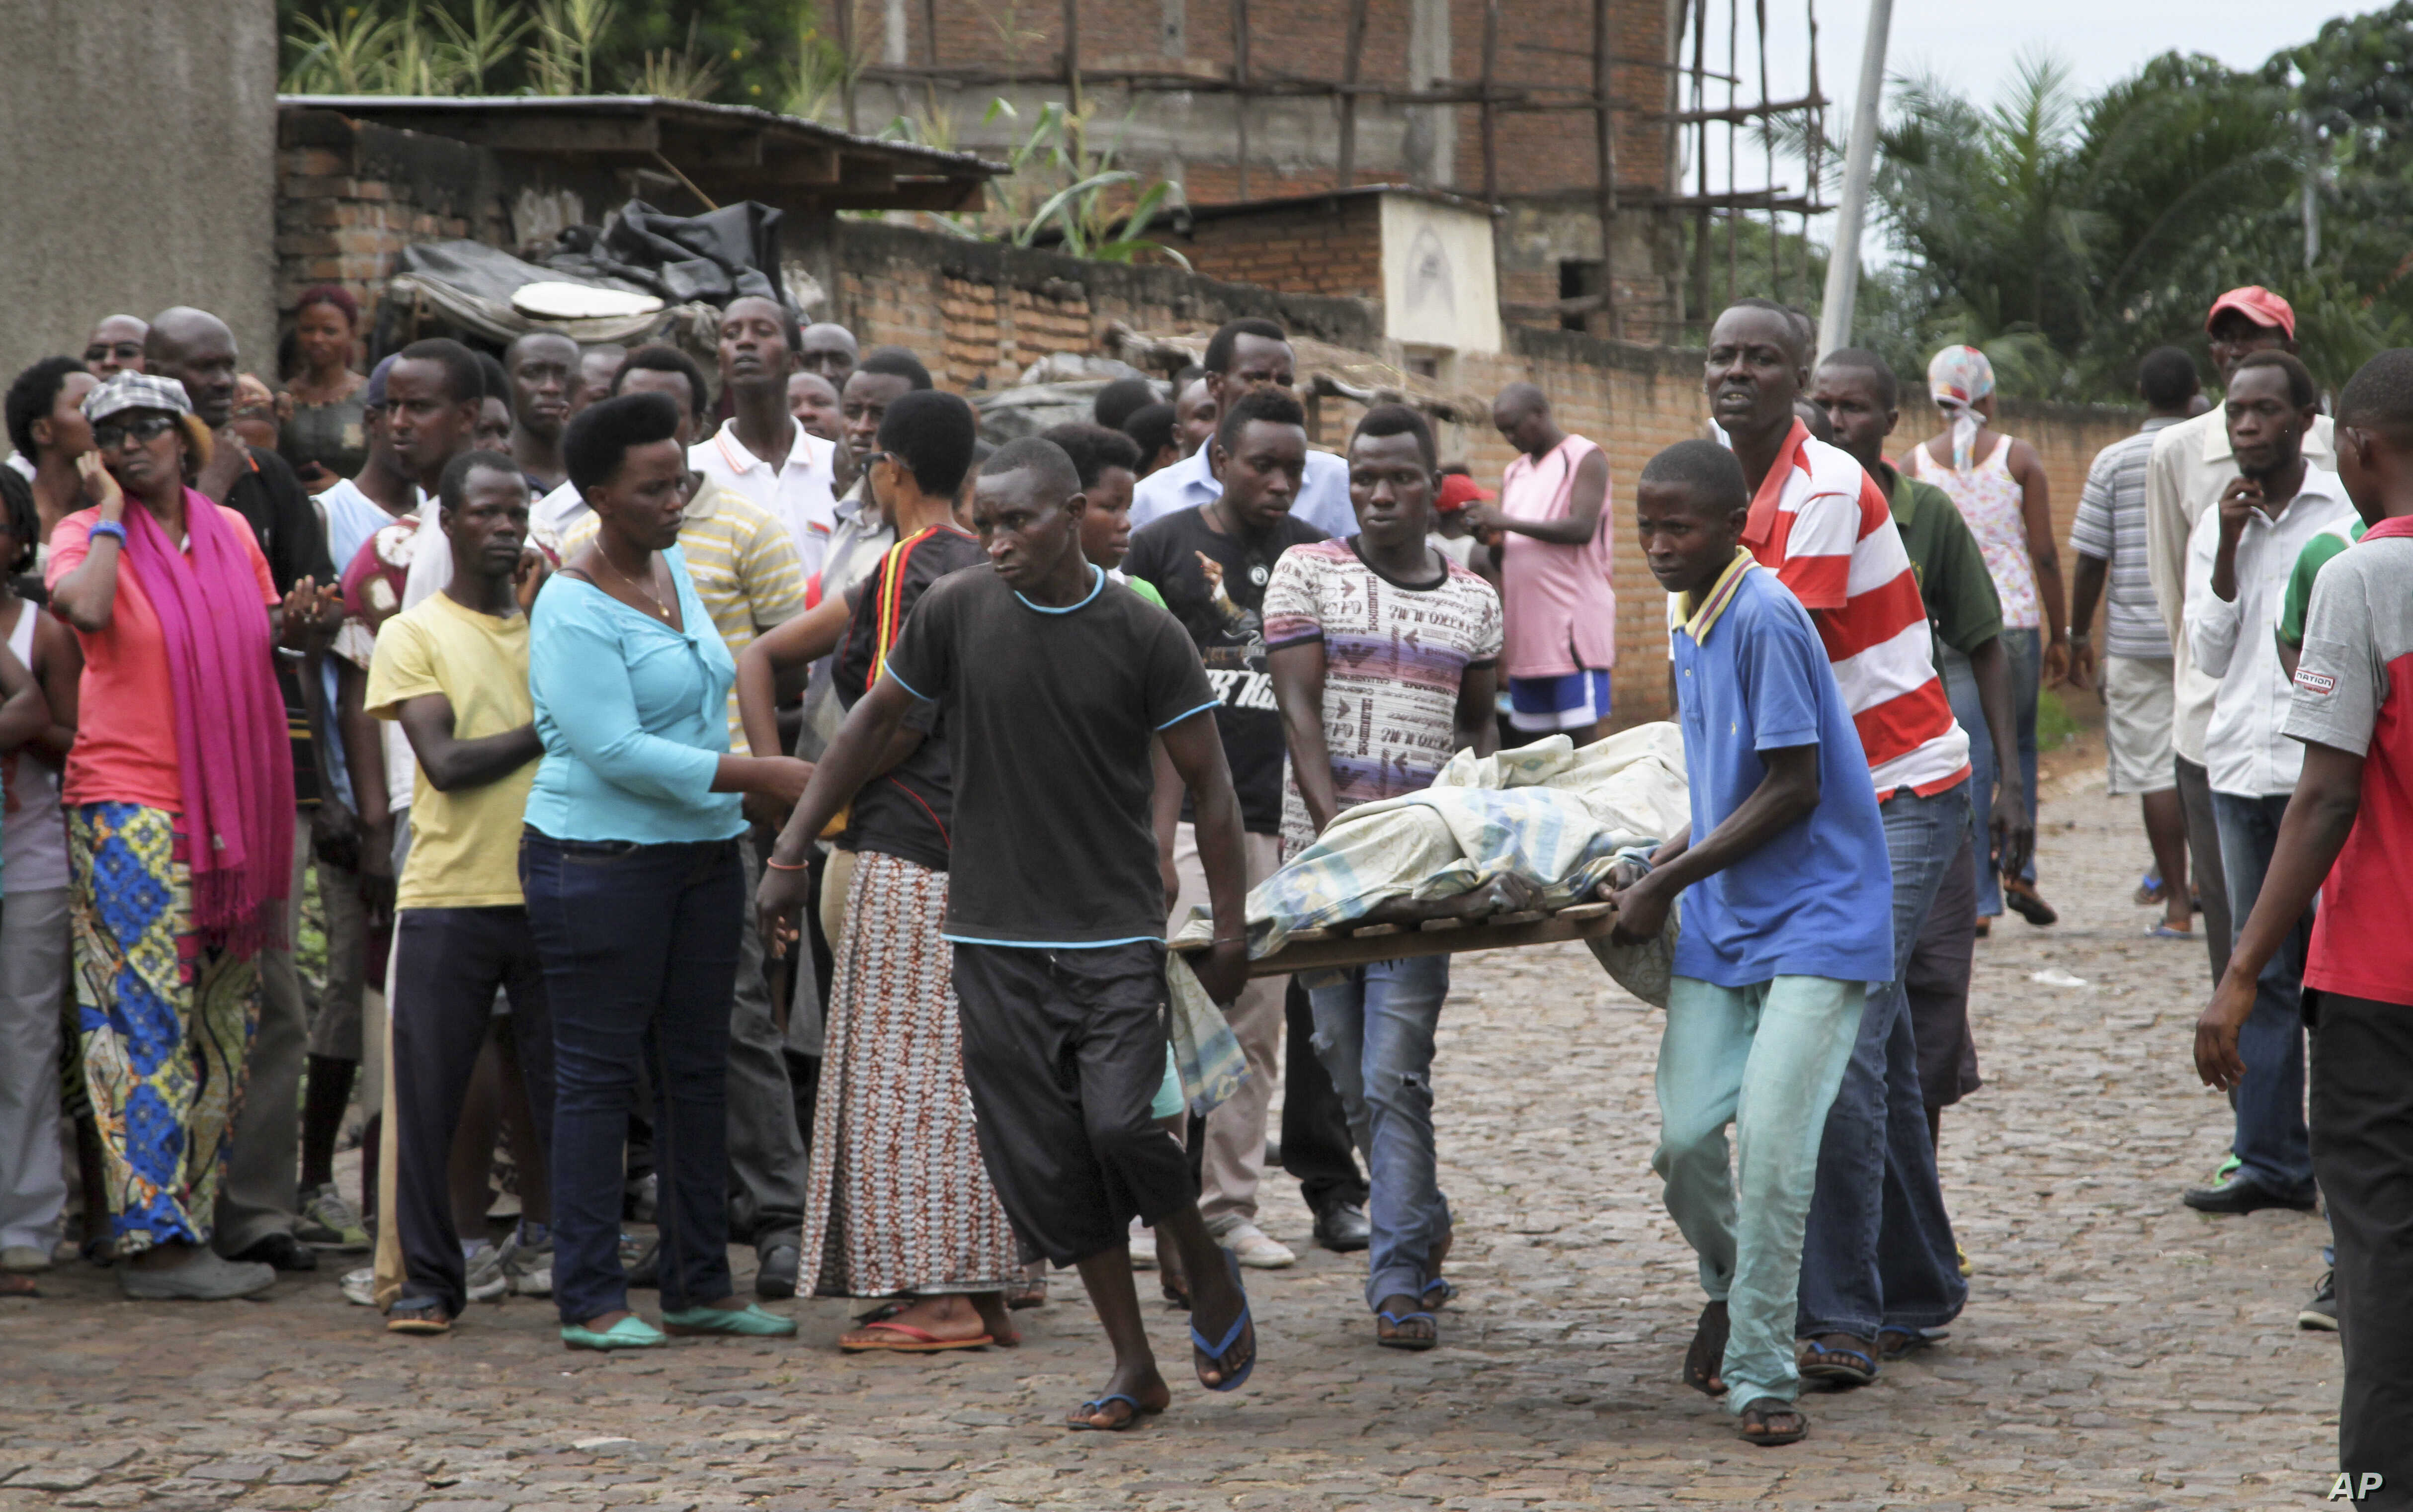 Men carry away a dead body in the Nyakabiga neighborhood of Bujumbura, Burundi, where a number of people were found shot dead a day after the government said an unidentified group had carried out coordinated attacks on three military installations, D...